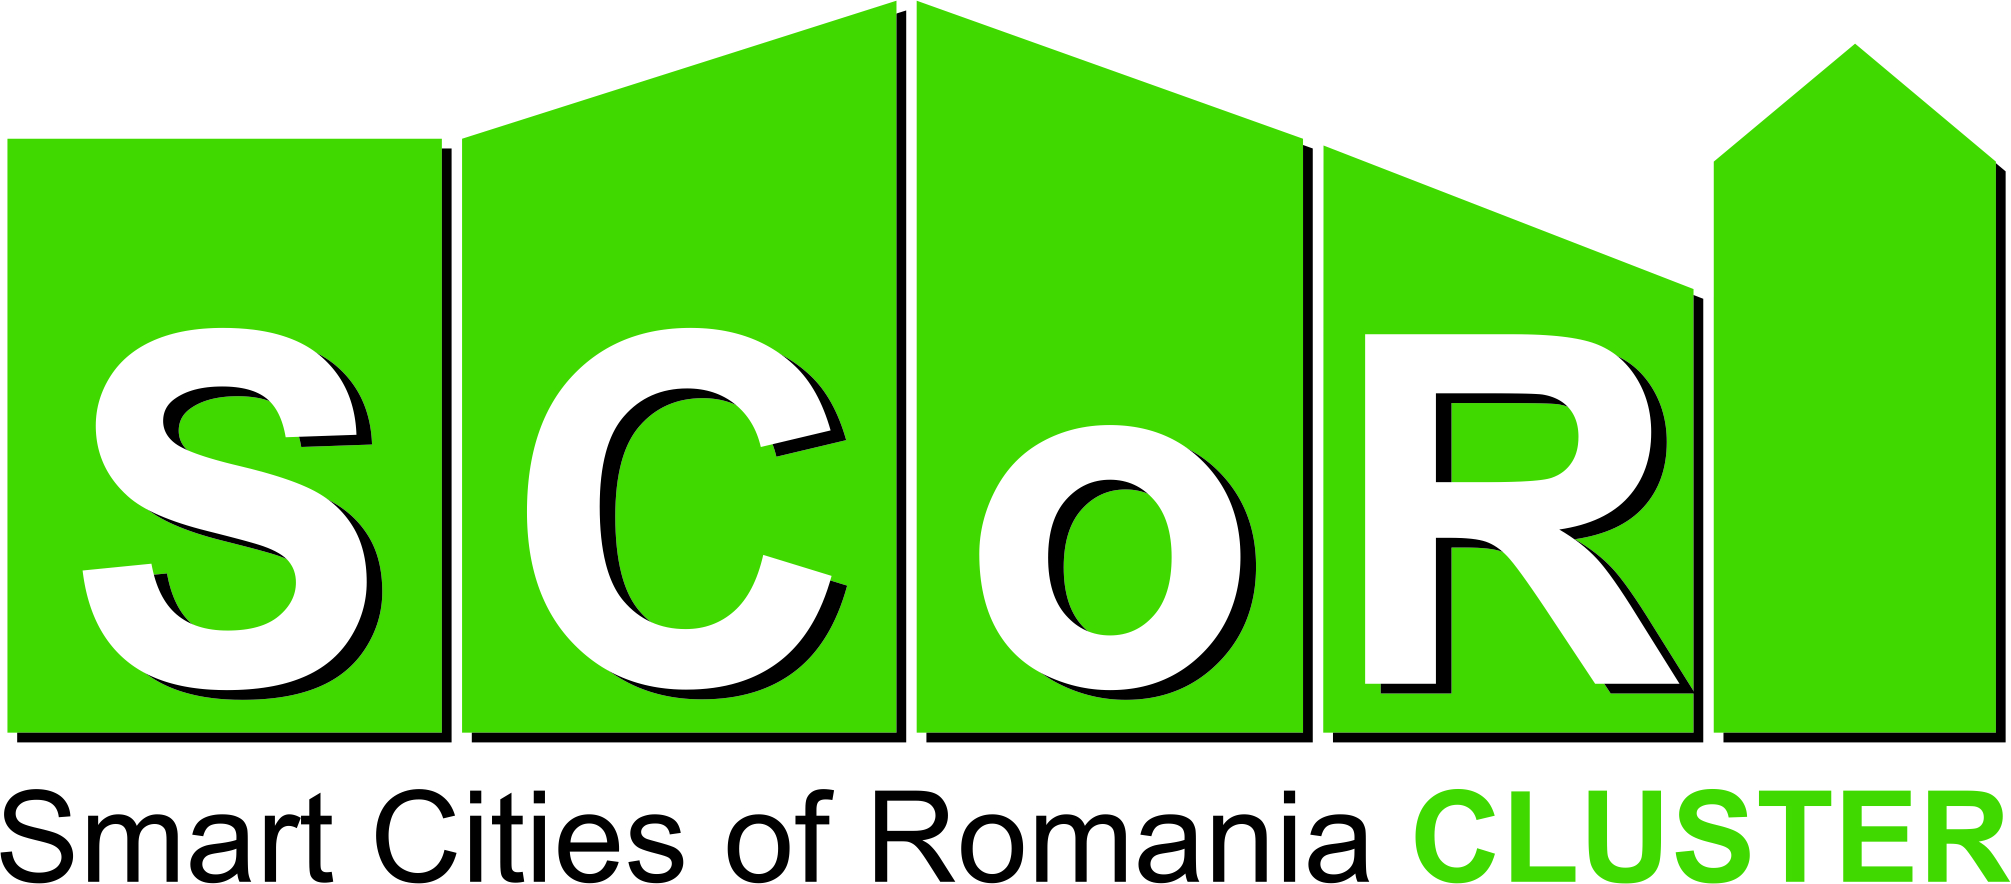 Smart Cities of Romania Cluster